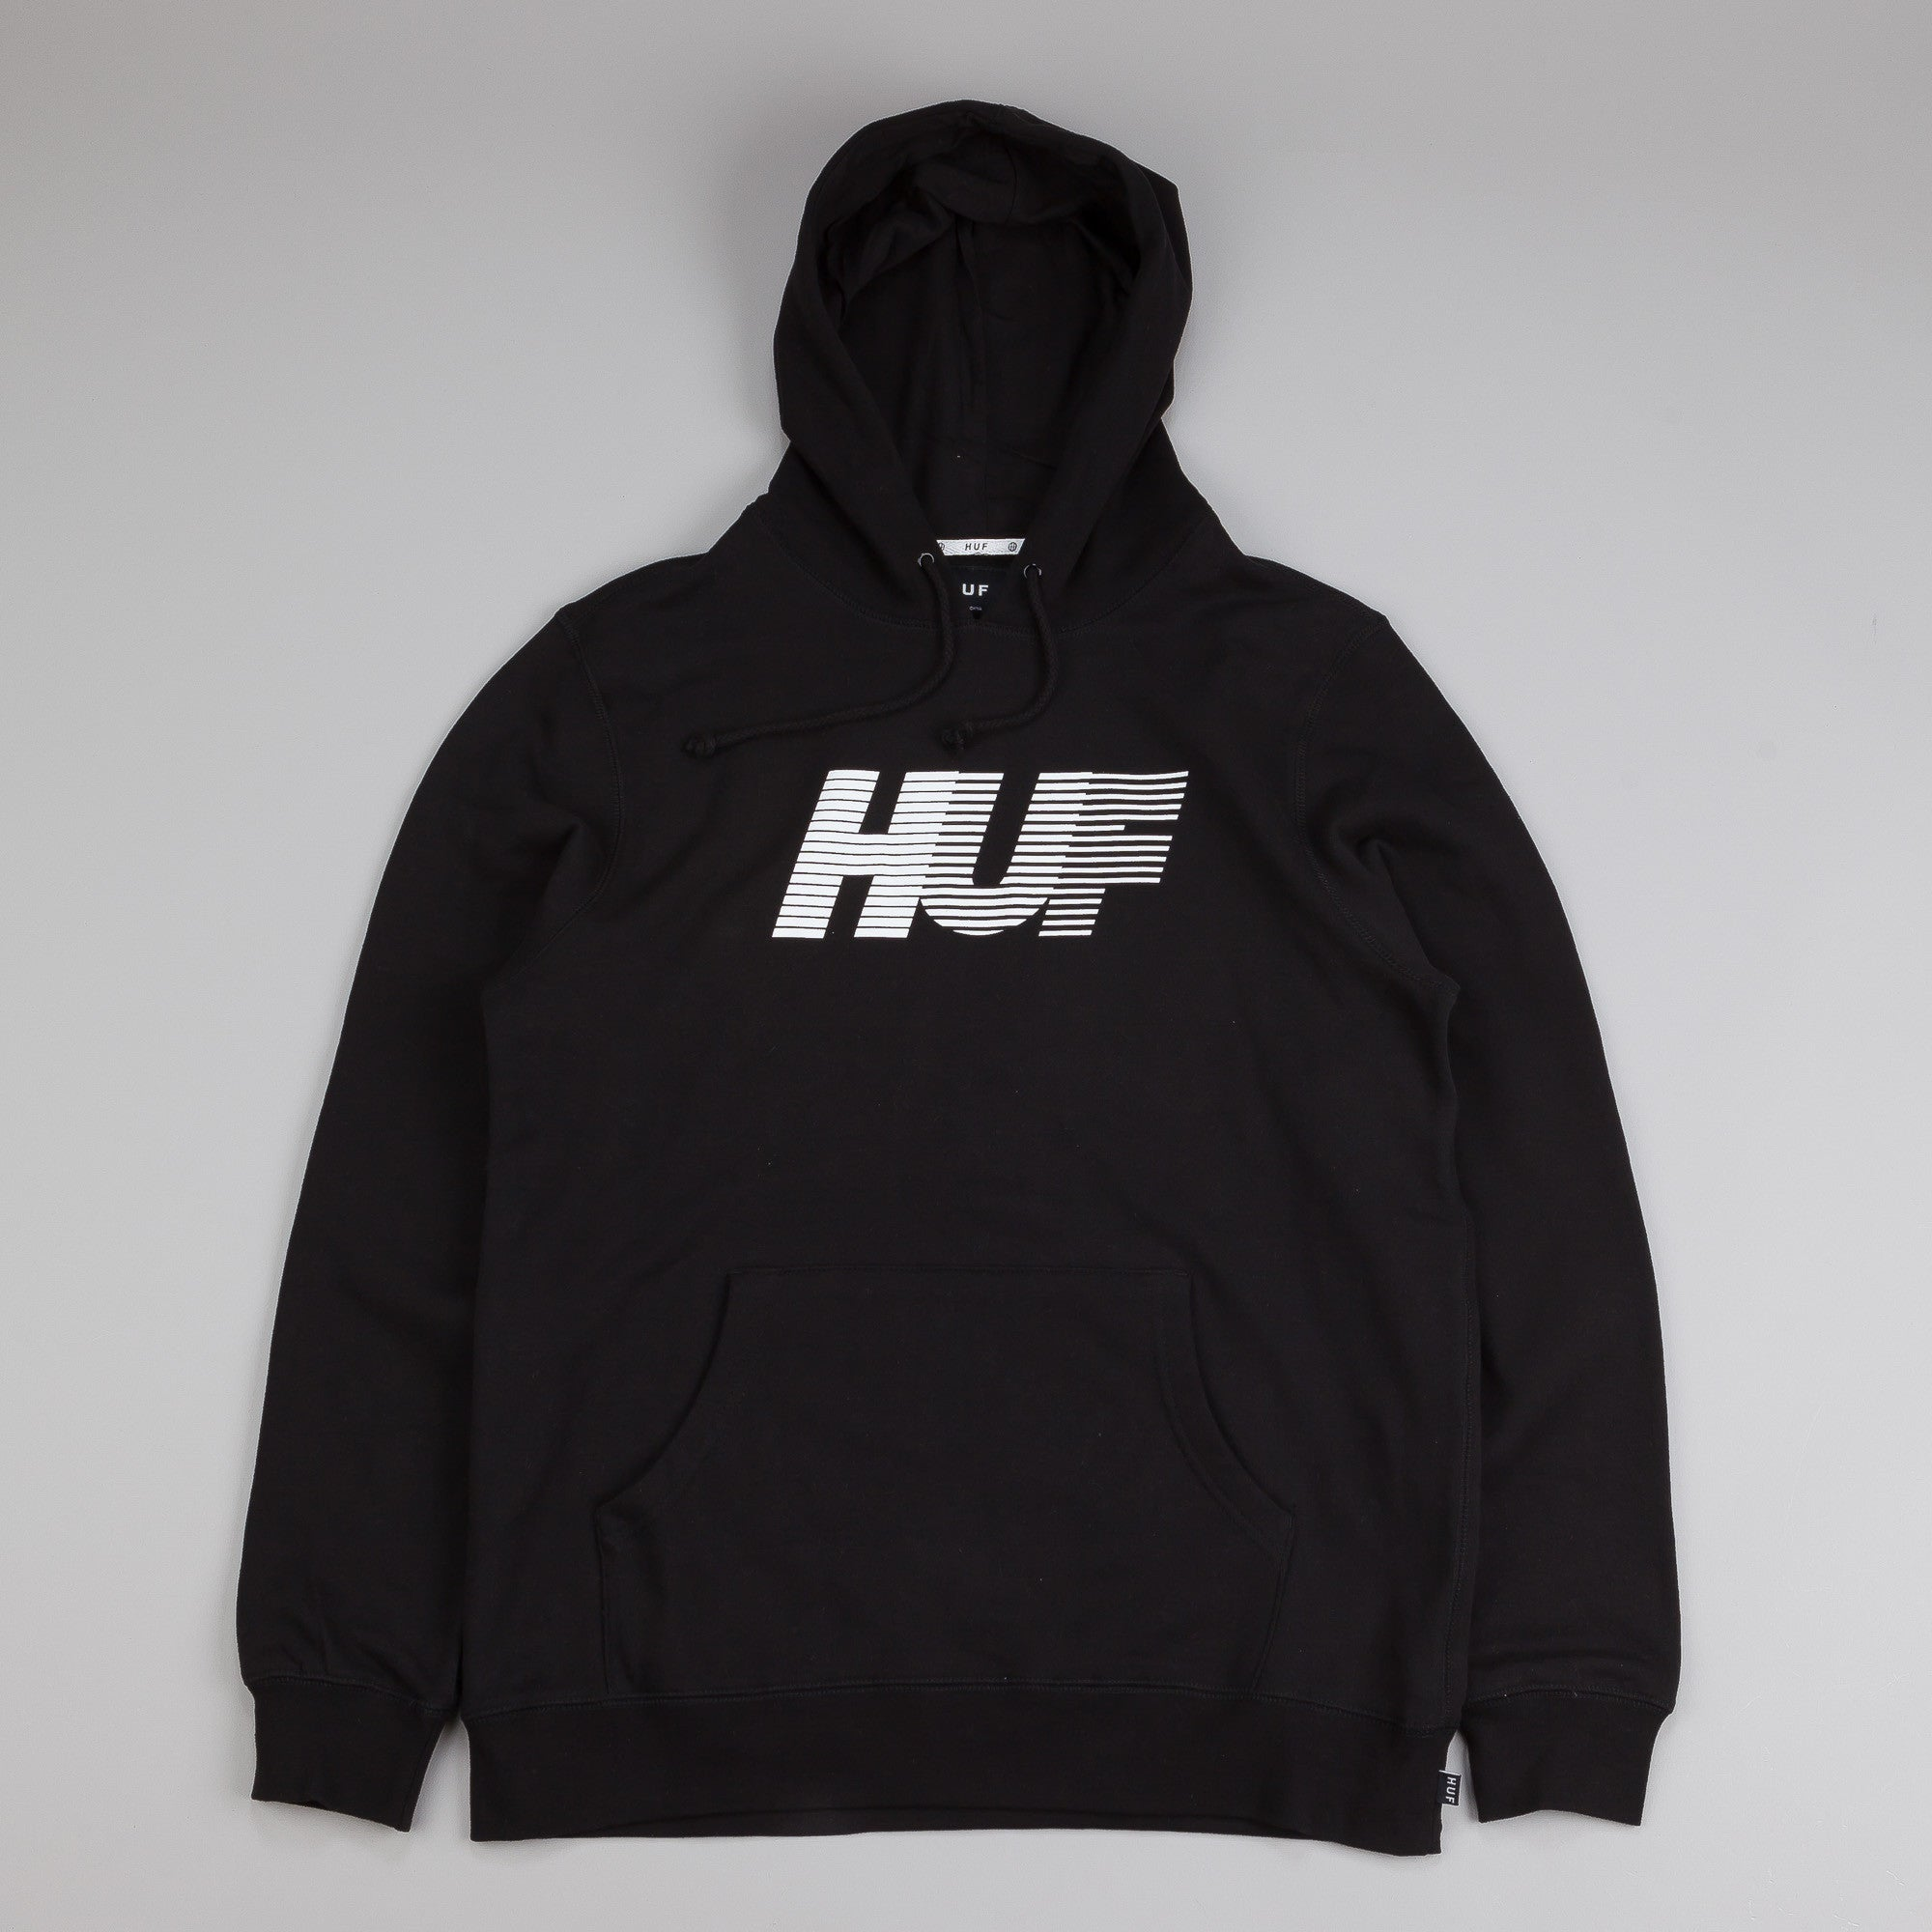 Huf 10K Hooded Sweatshirt Black